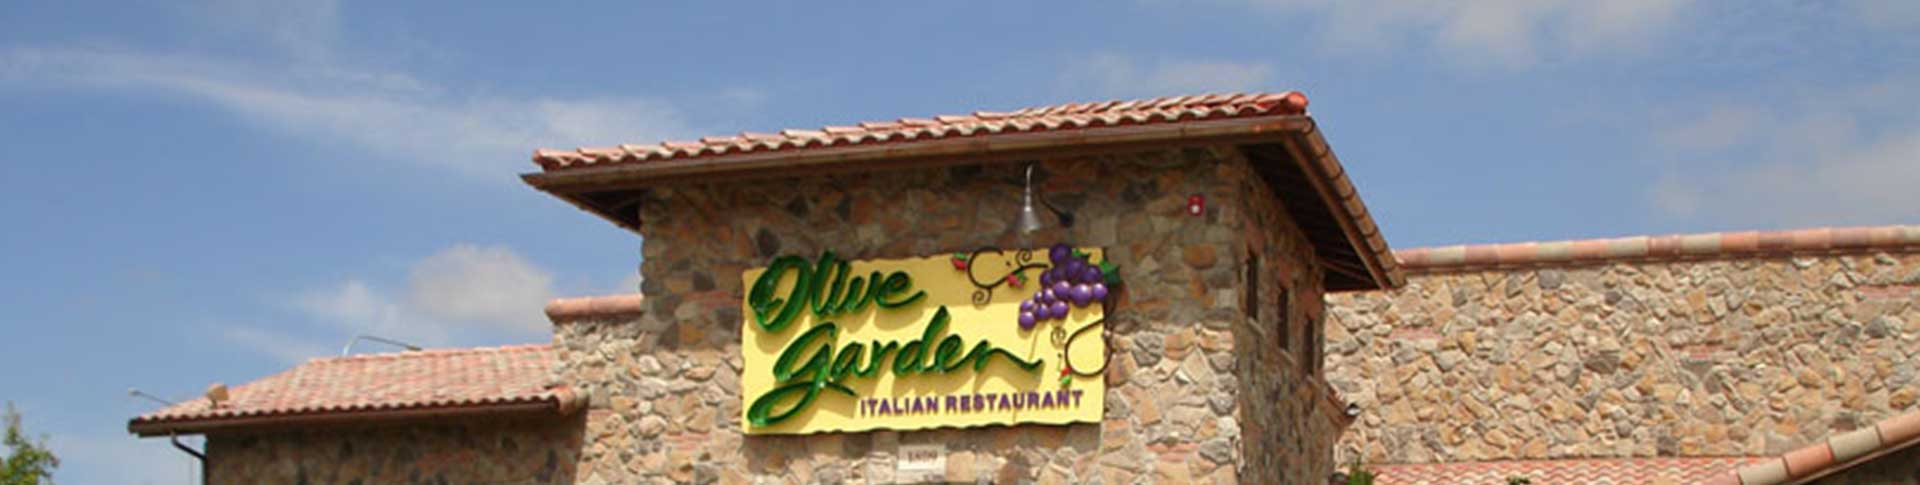 Olive Garden Restaurants | Walker Construction